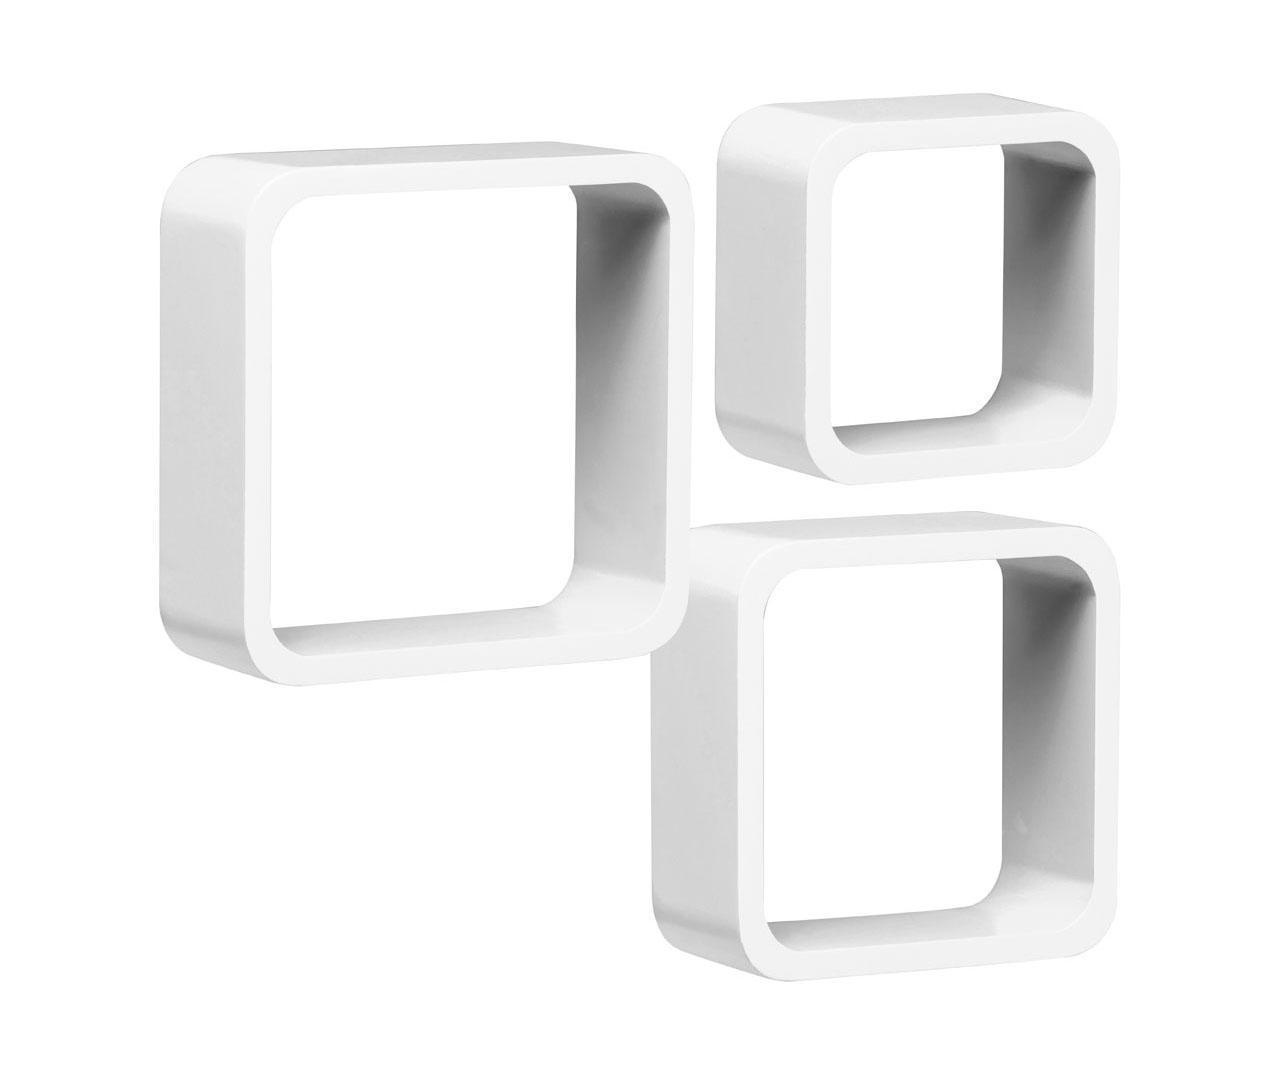 Cube Rounded White 3 darab Fali Polc